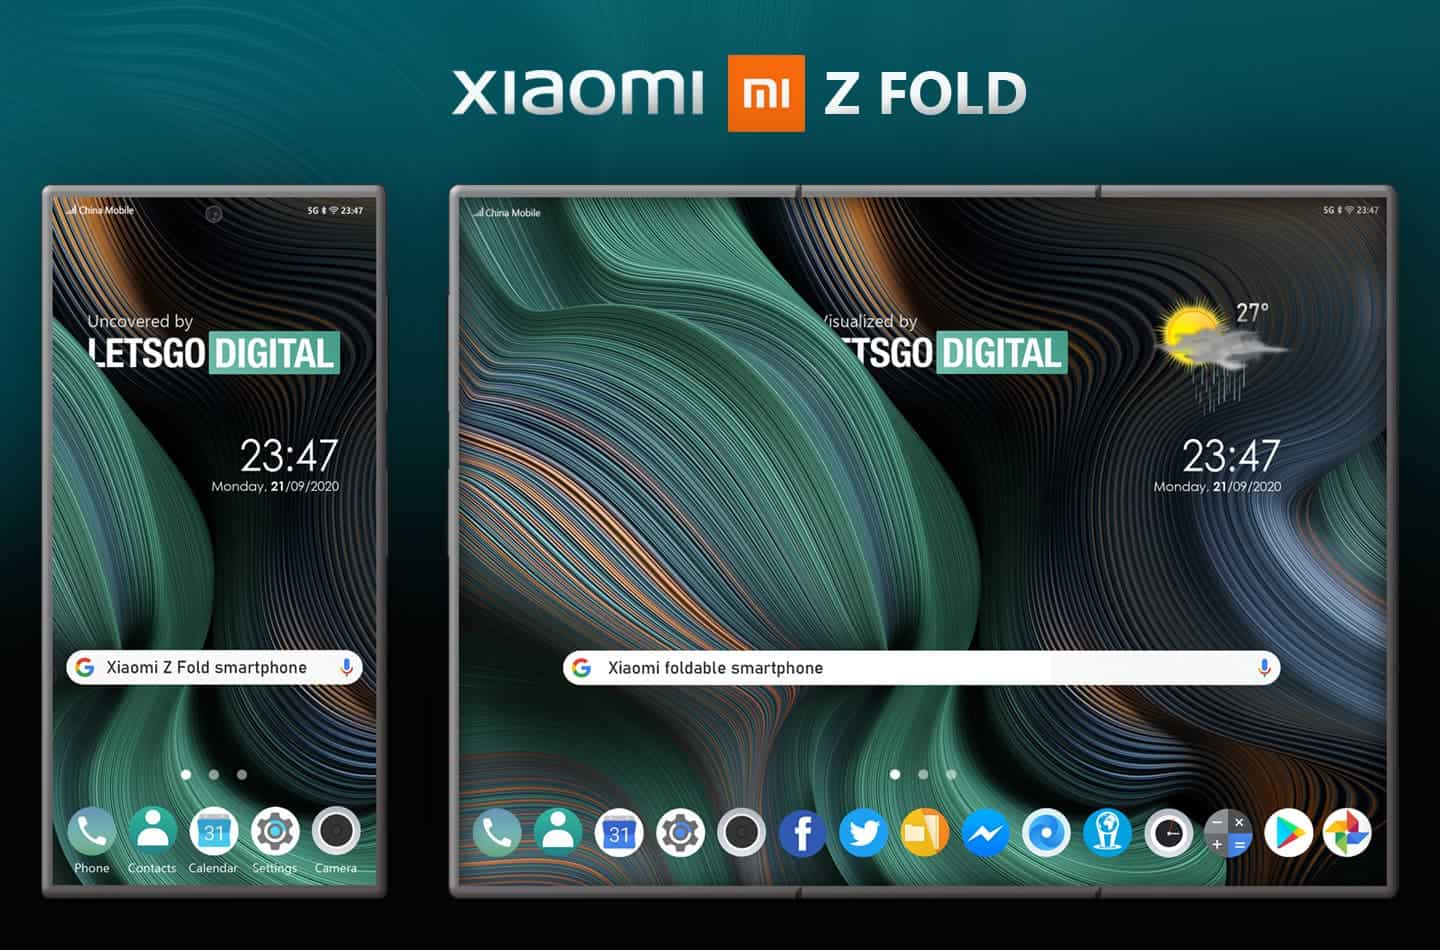 Xiaomi patent shows a foldable phone with a Z Fold design - Gizchina.com